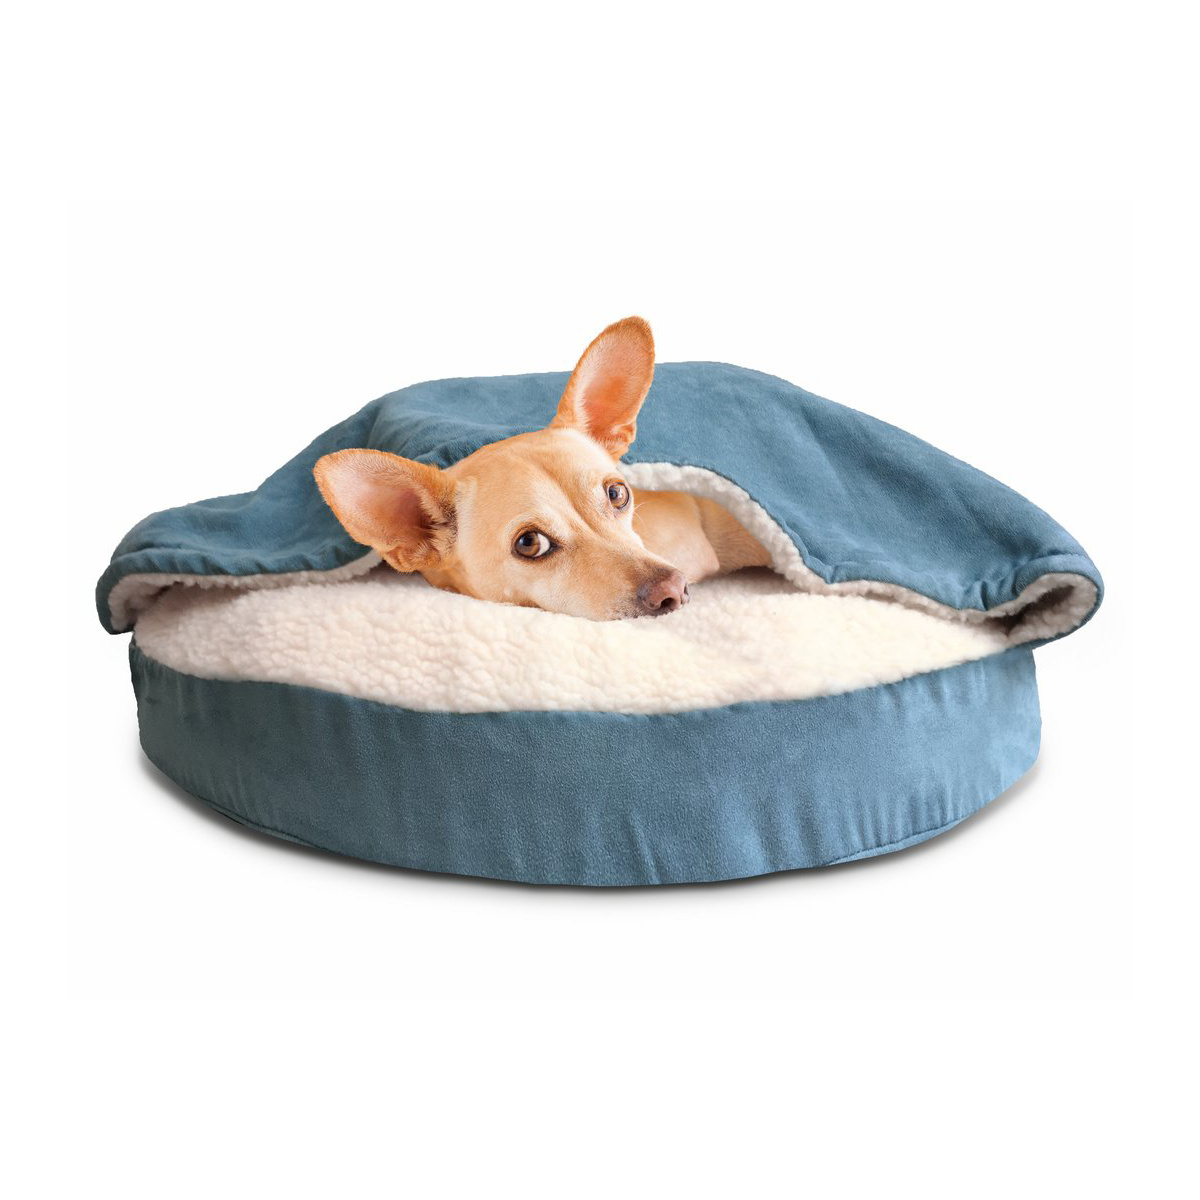 Hooded Dog Bed From Wayfair's New Online Pet Supply Store